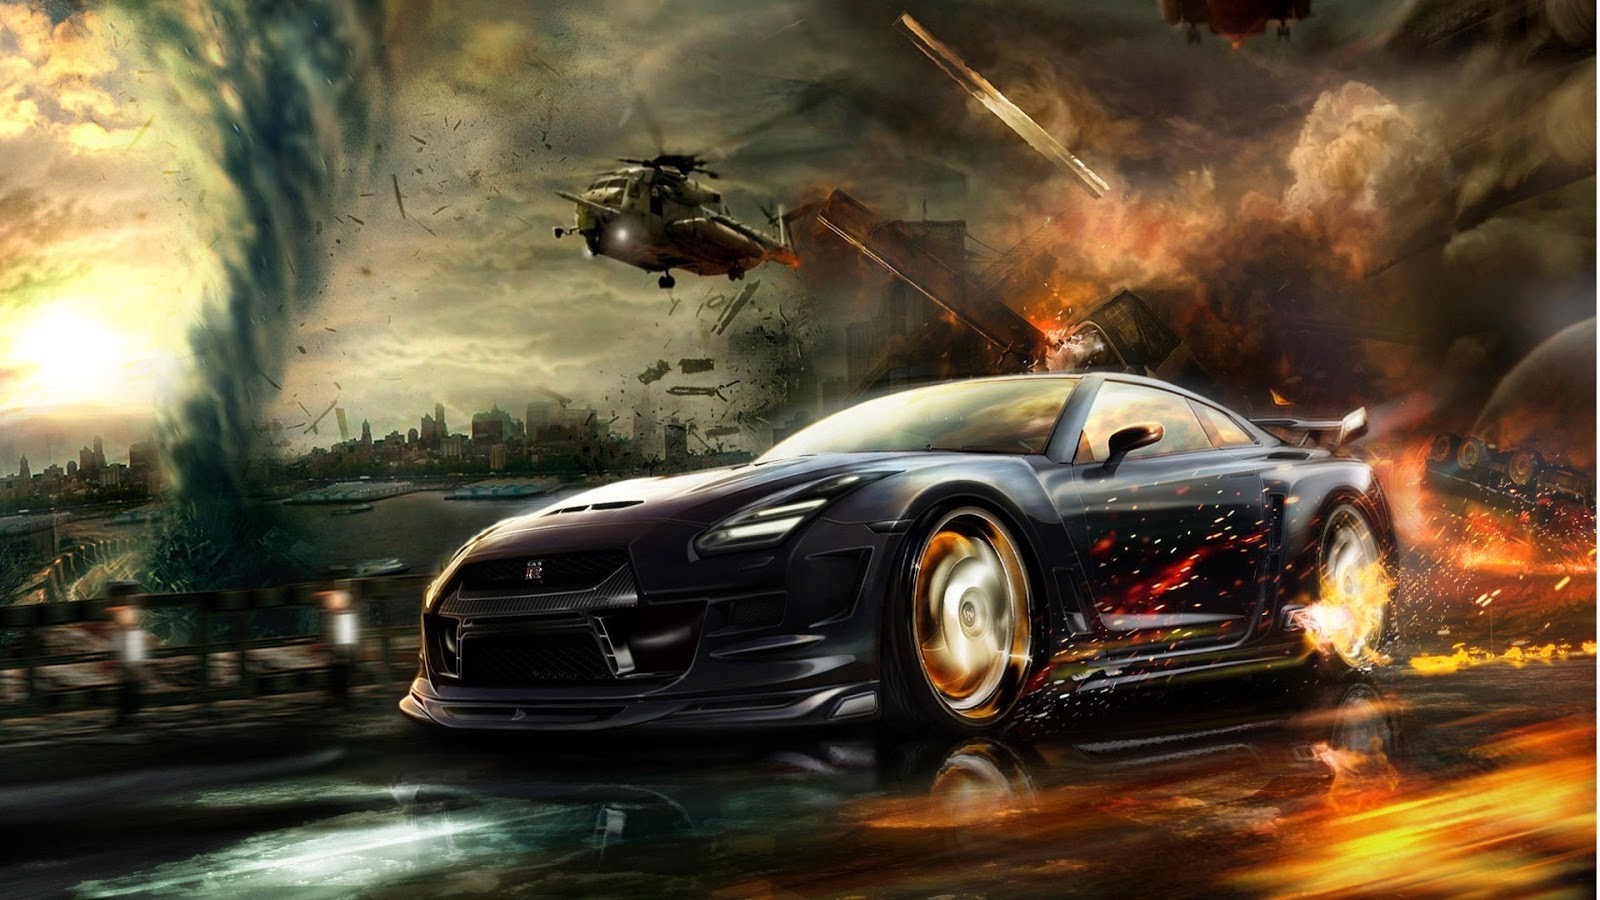 Car Game Wallpaper Widescreen Wallpapers Wallpapers Collection 1600x900